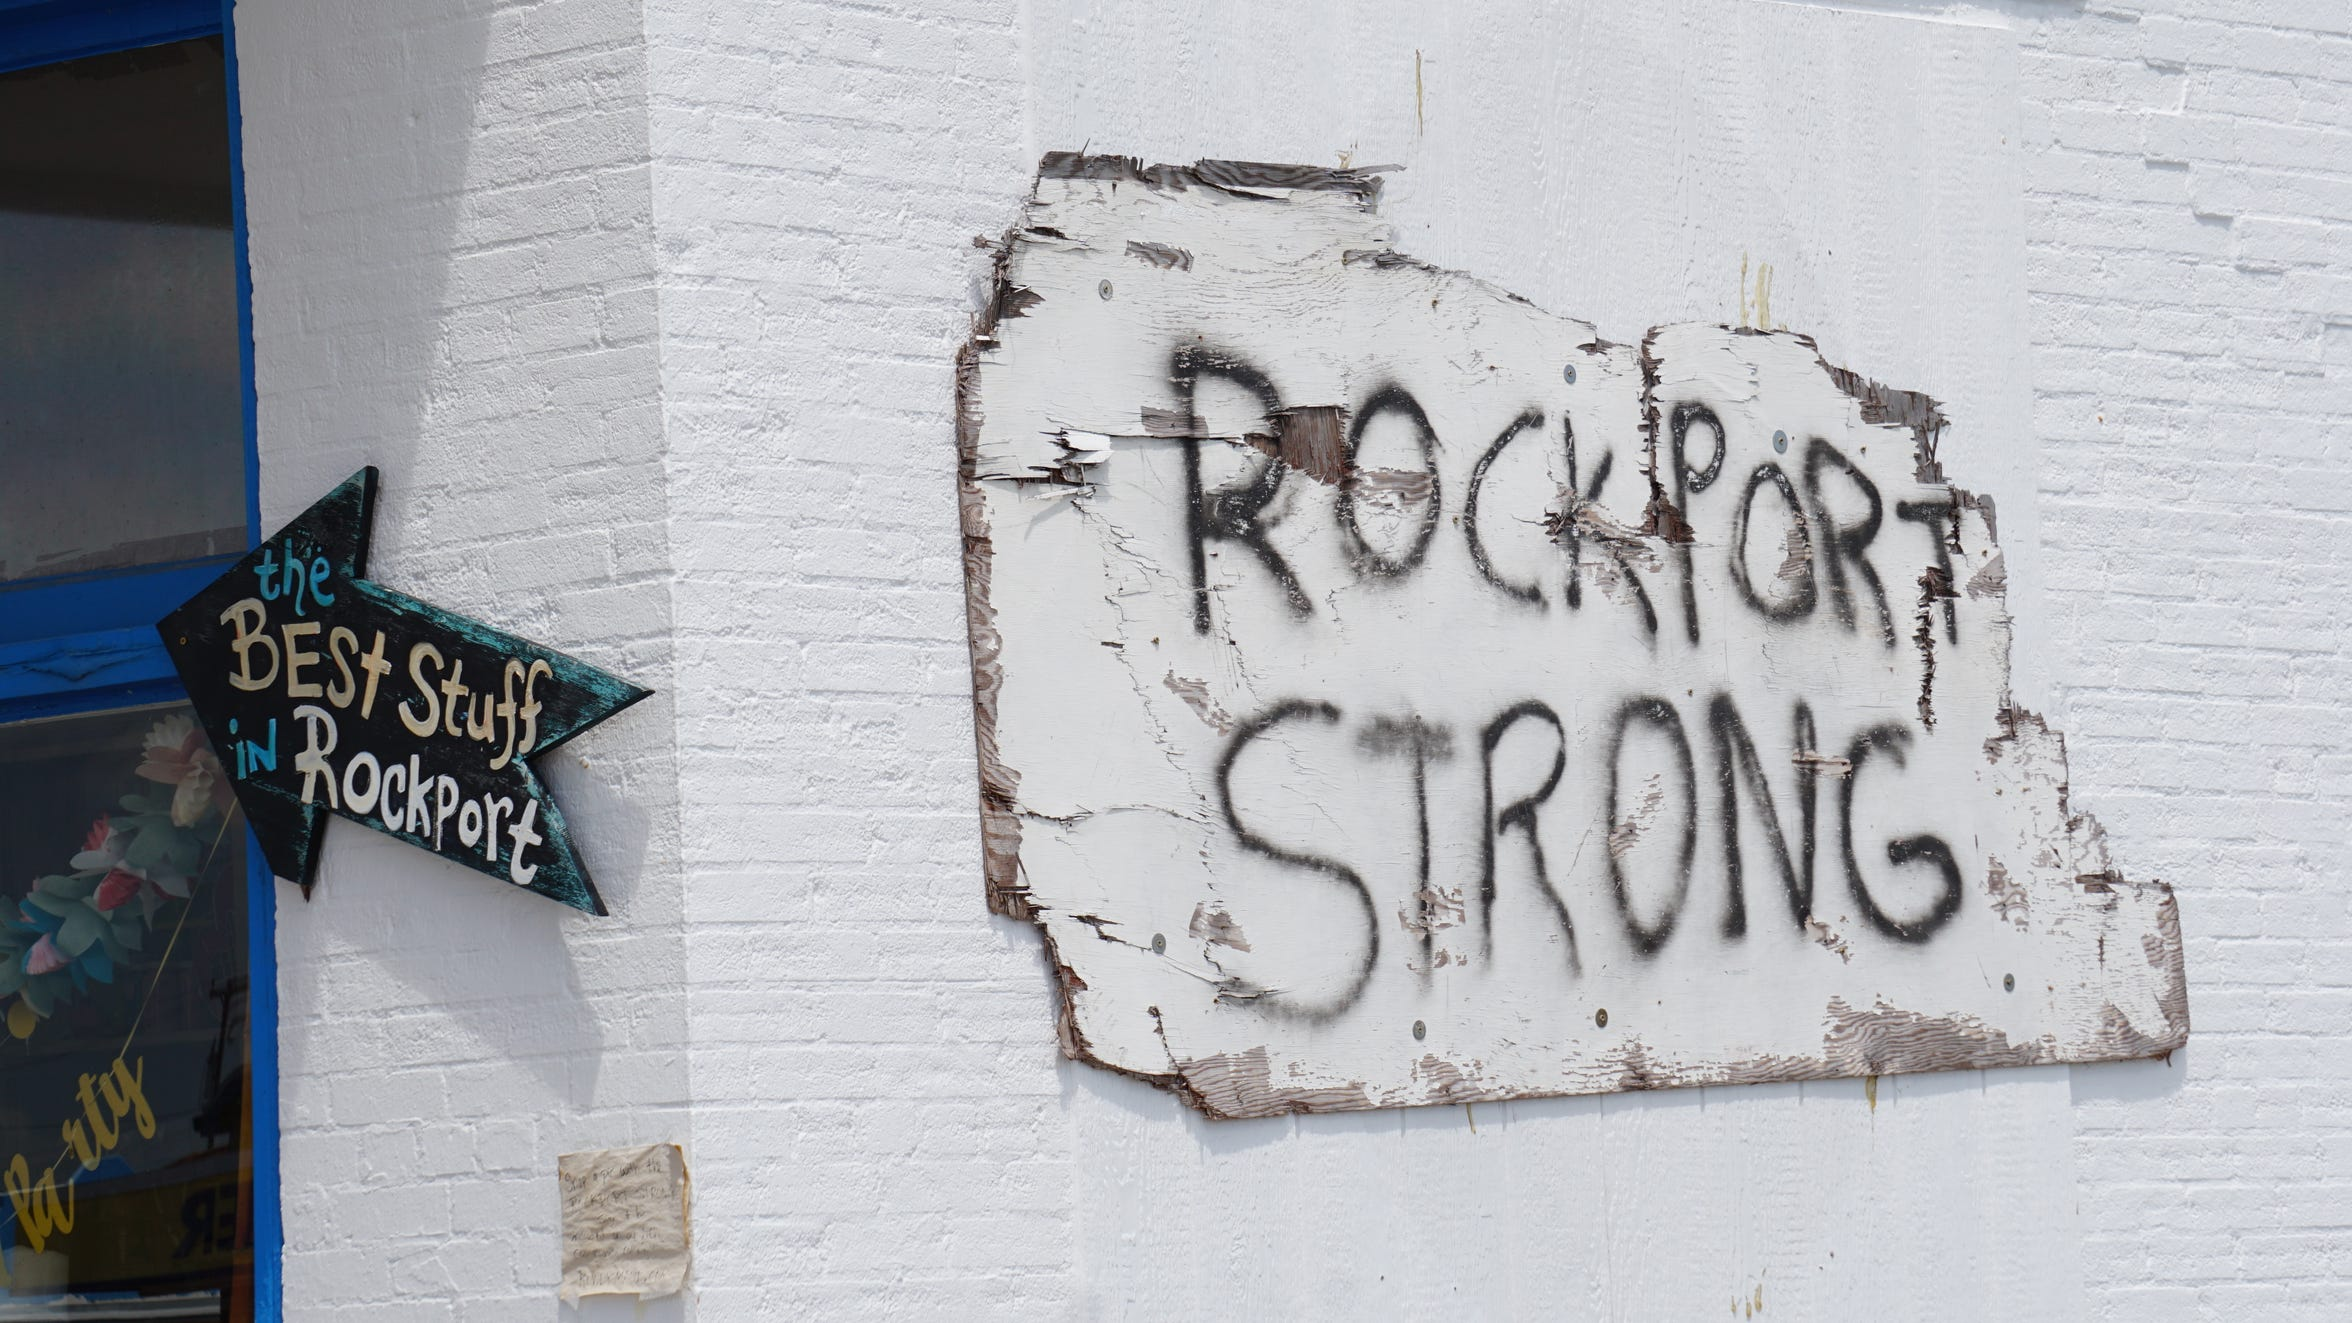 Rockport Strong